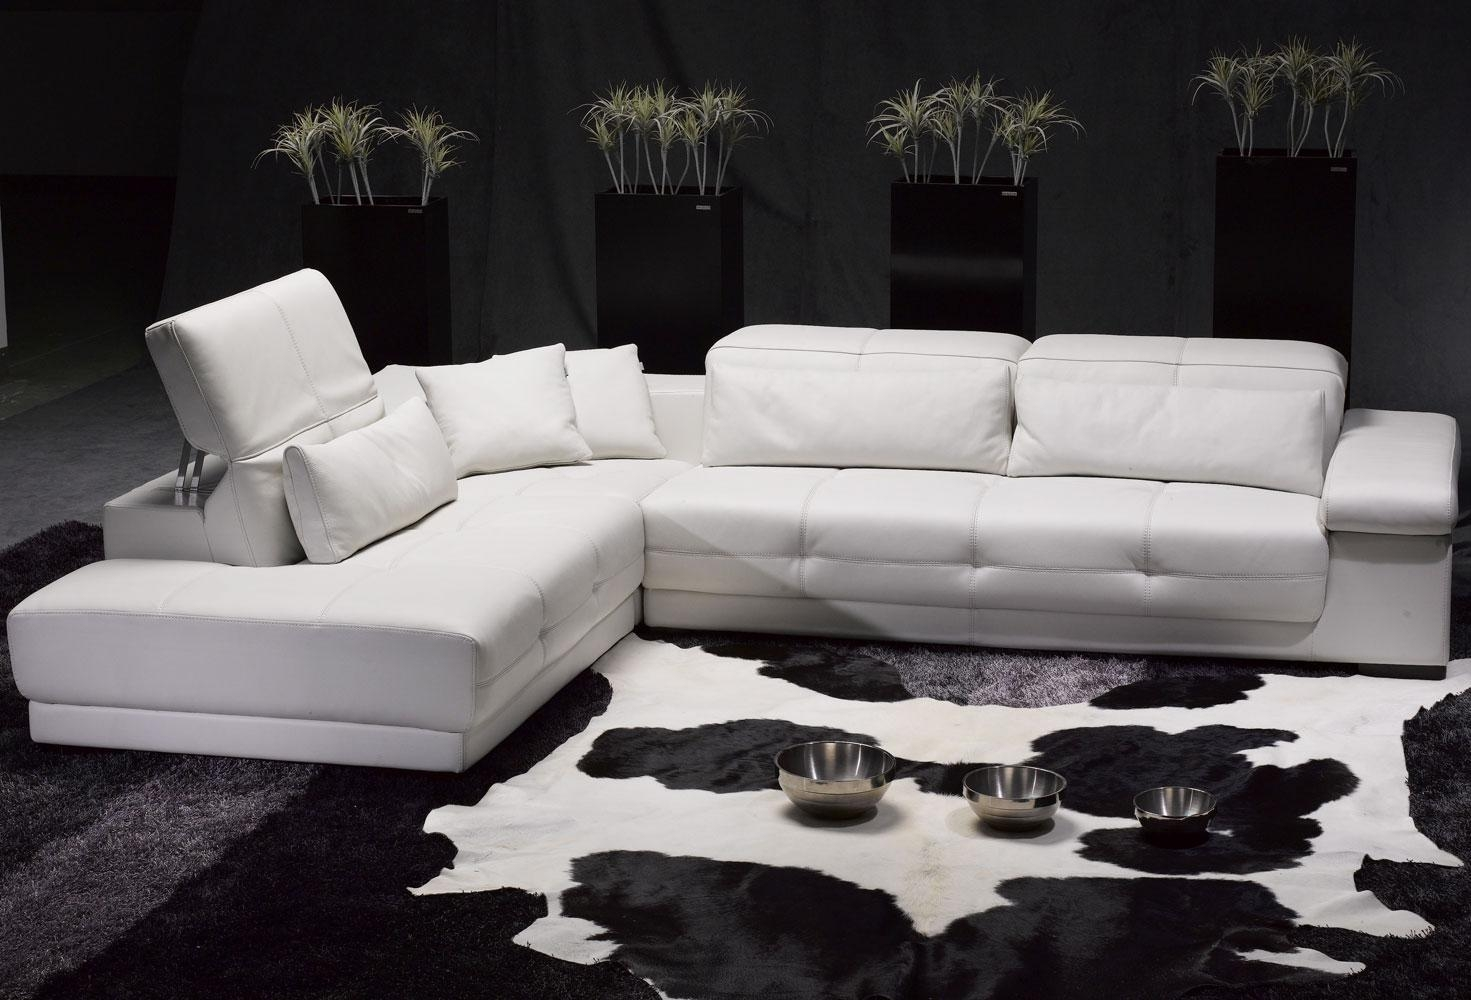 Vig Furniture Black And White Bonded Leather Sofa Set – S3Net Inside Black And White Leather Sofas (Image 19 of 20)